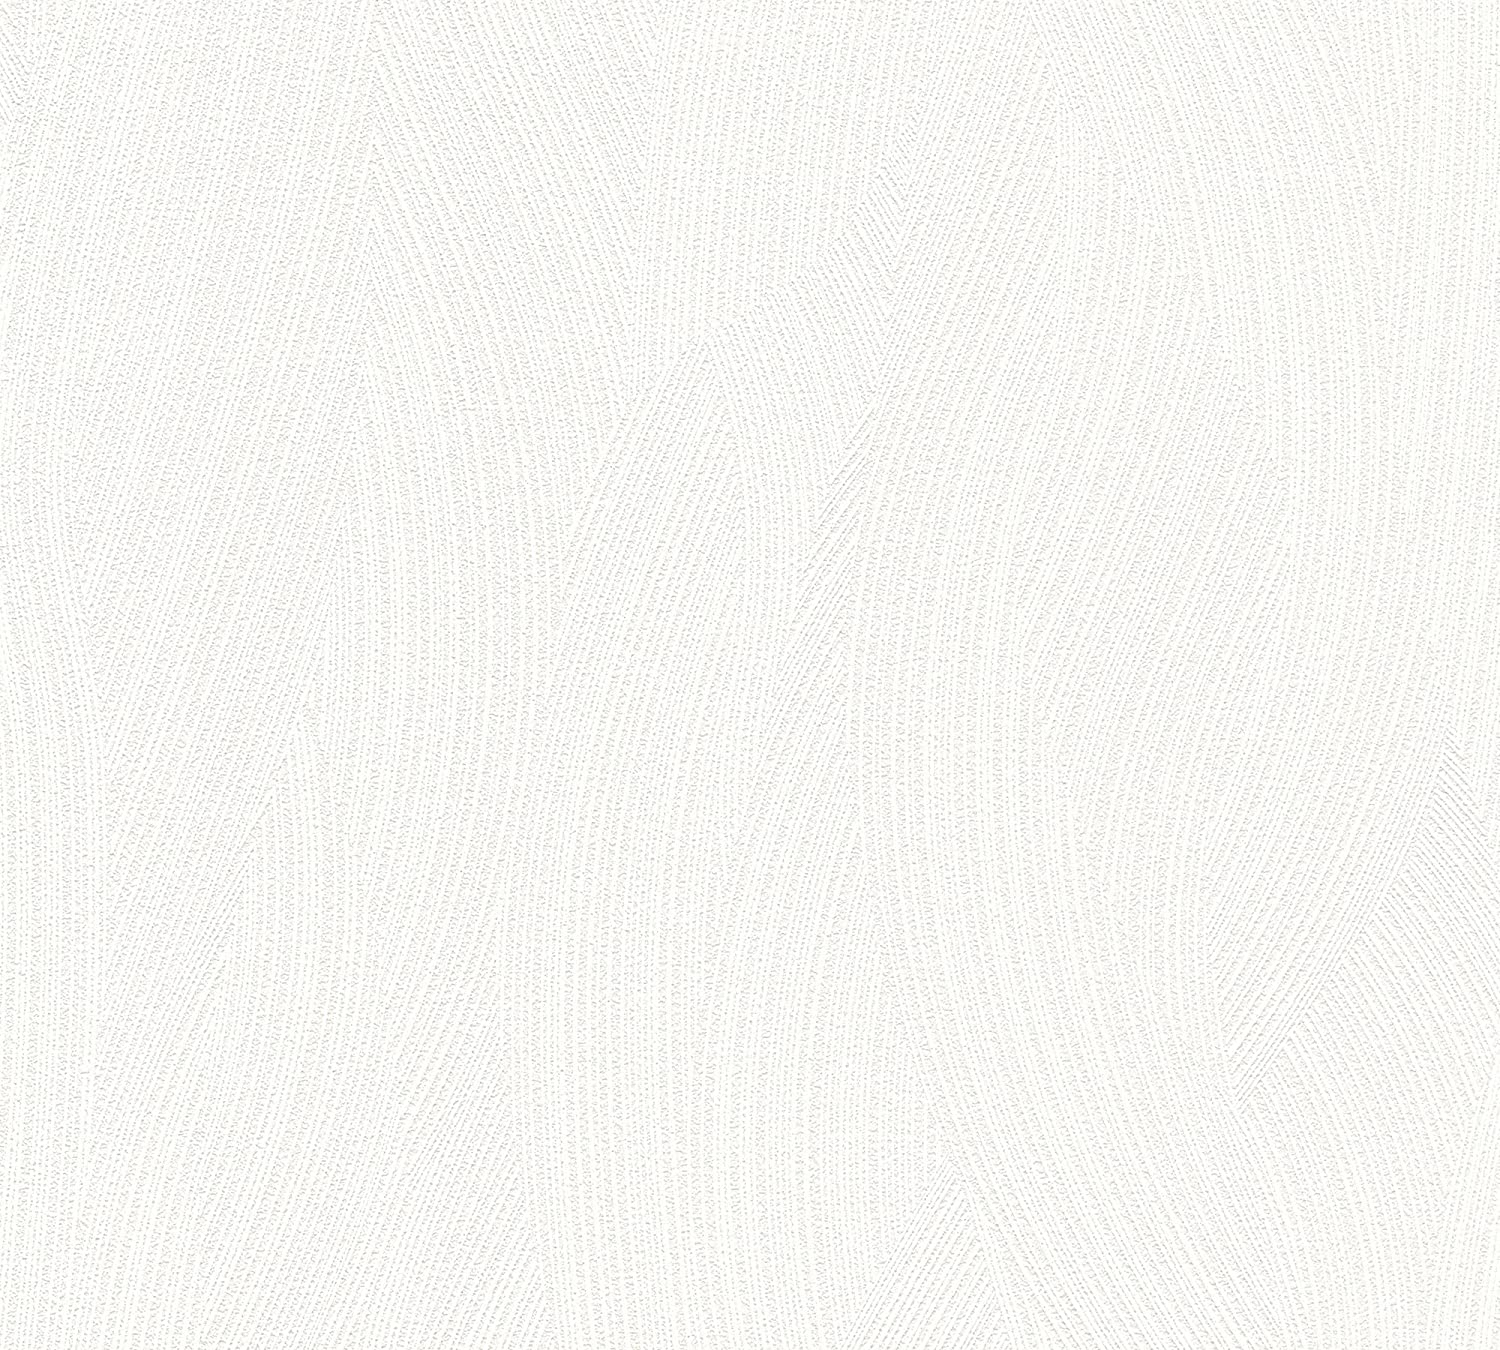 A.S. Creation 354241 Non-Woven Spring Happy Collection Wallpaper 新品 お気にいる 送料無料